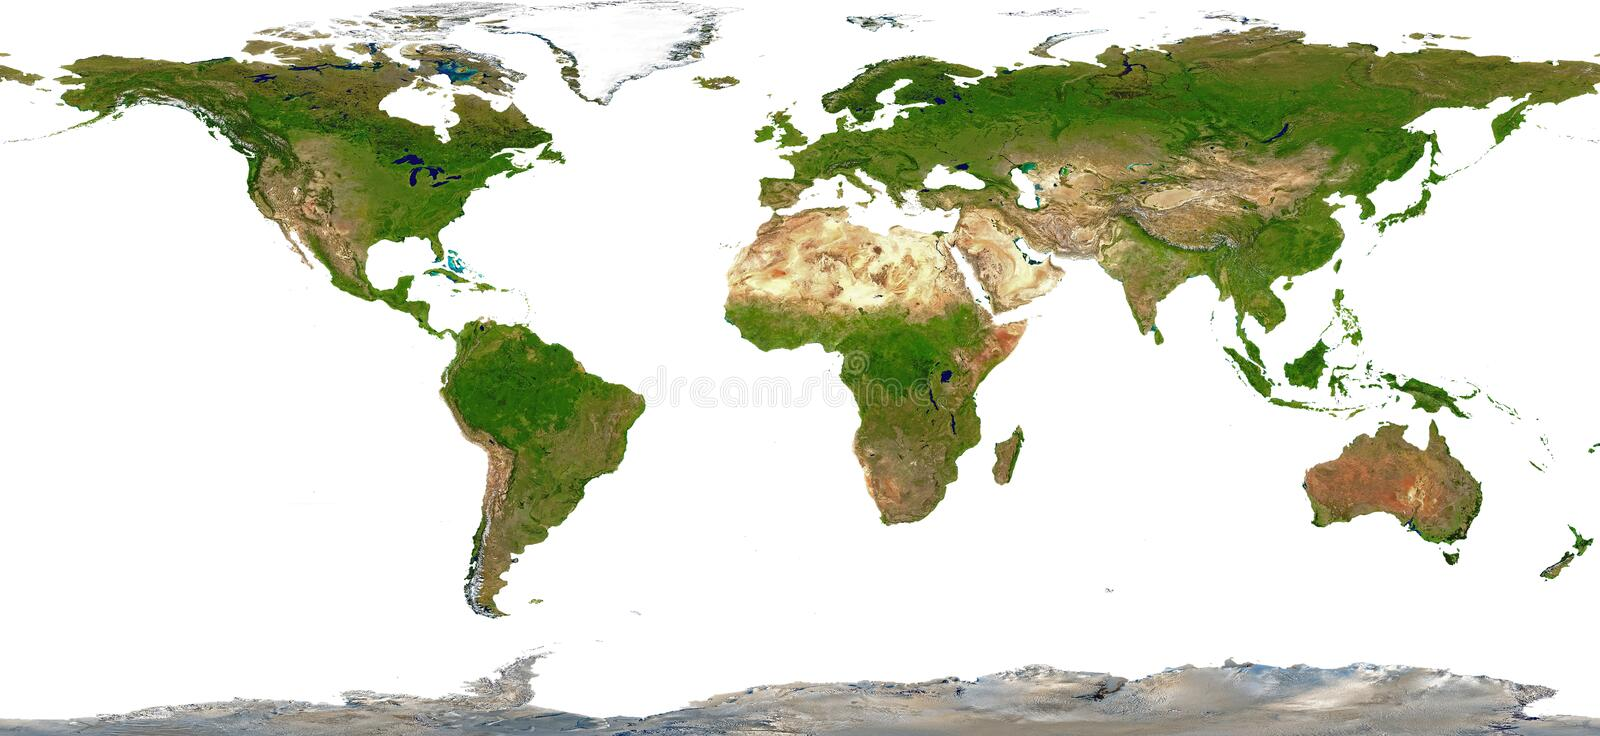 World map shaded relief stock image image of australia 12864219 download world map shaded relief stock image image of australia 12864219 gumiabroncs Choice Image